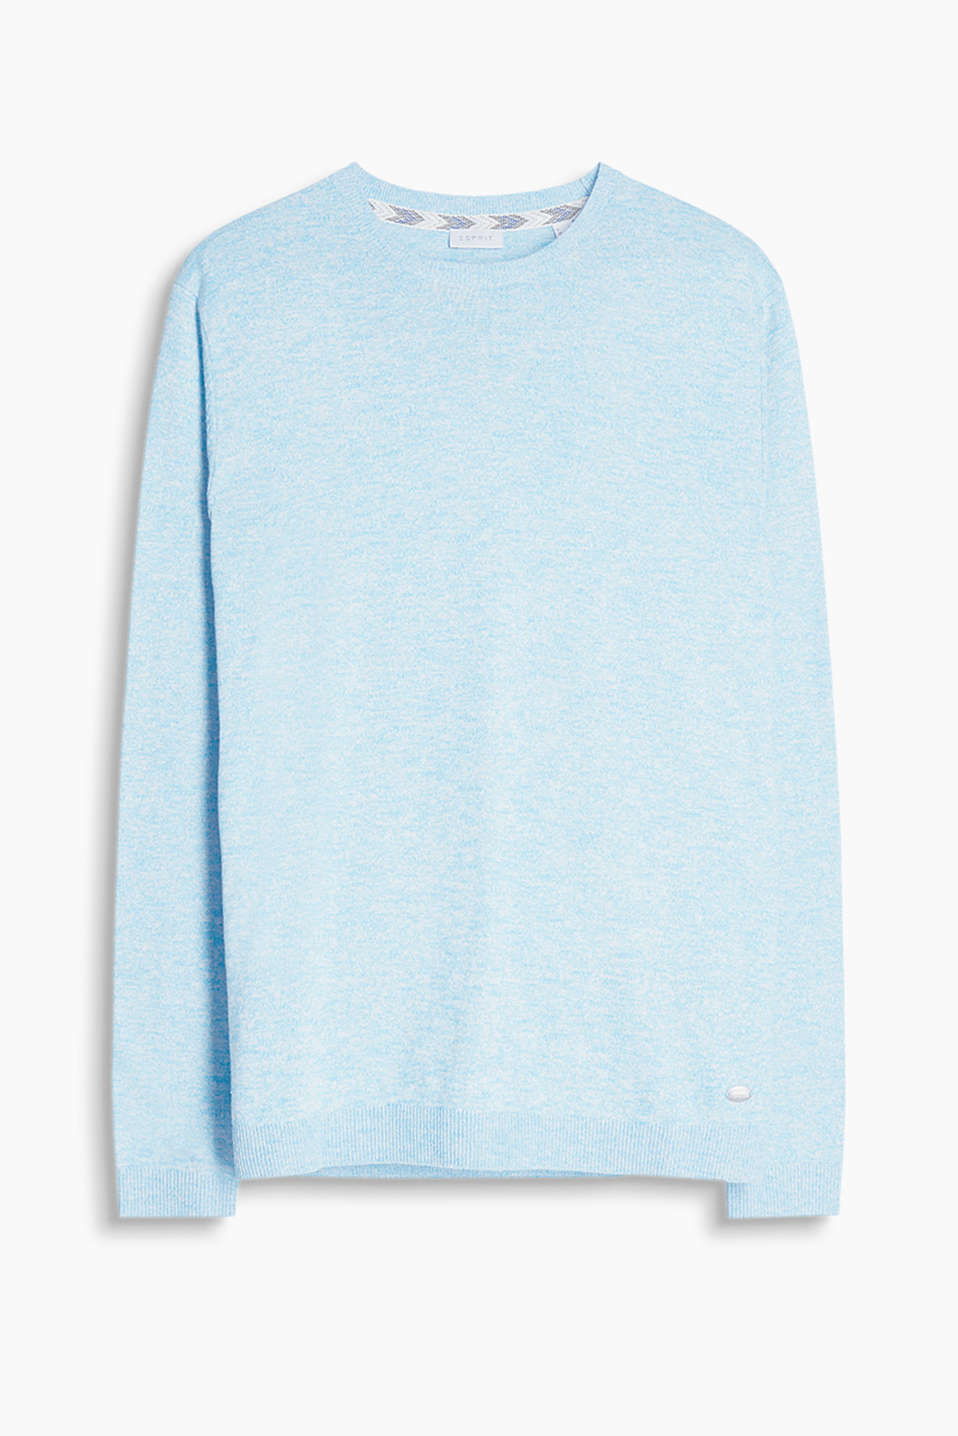 Made of a soft, fine knit yarn: jumper with ribbed cuffs and waistband, in pure cotton